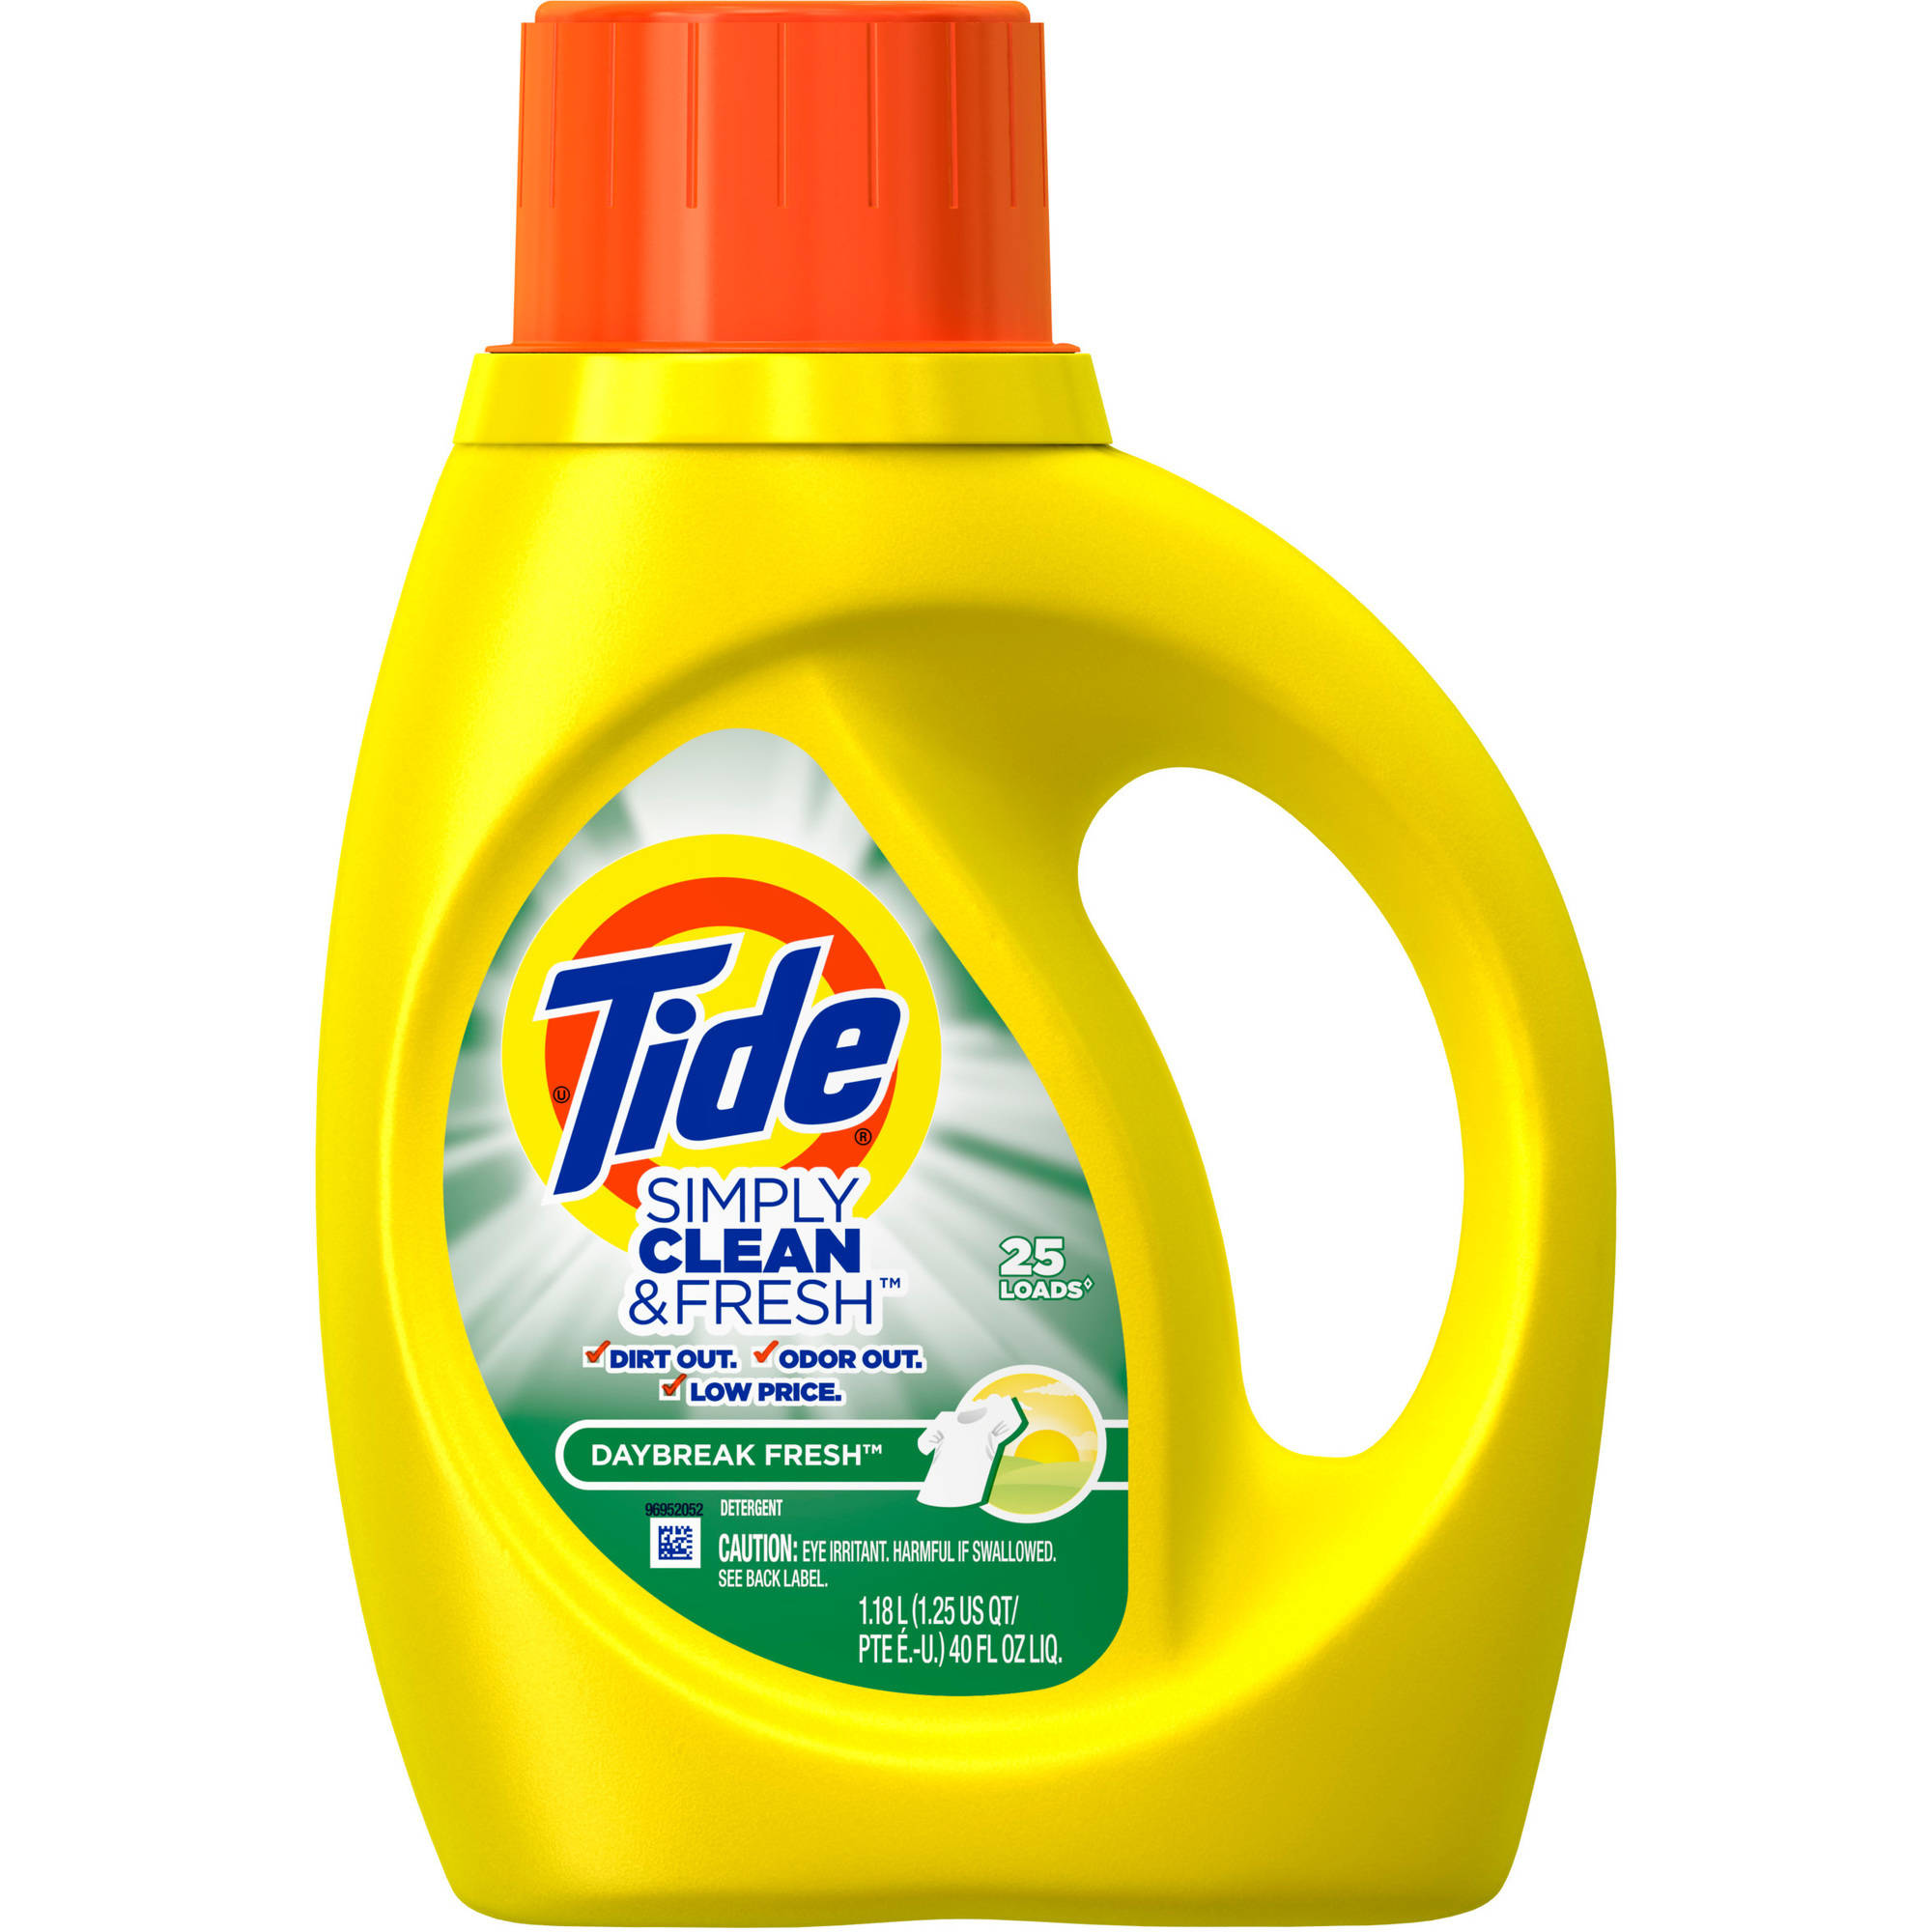 Tide Simply Clean & Fresh HE Liquid Laundry Detergent, Daybreak Fresh Scent, 25 Loads 40 fl oz